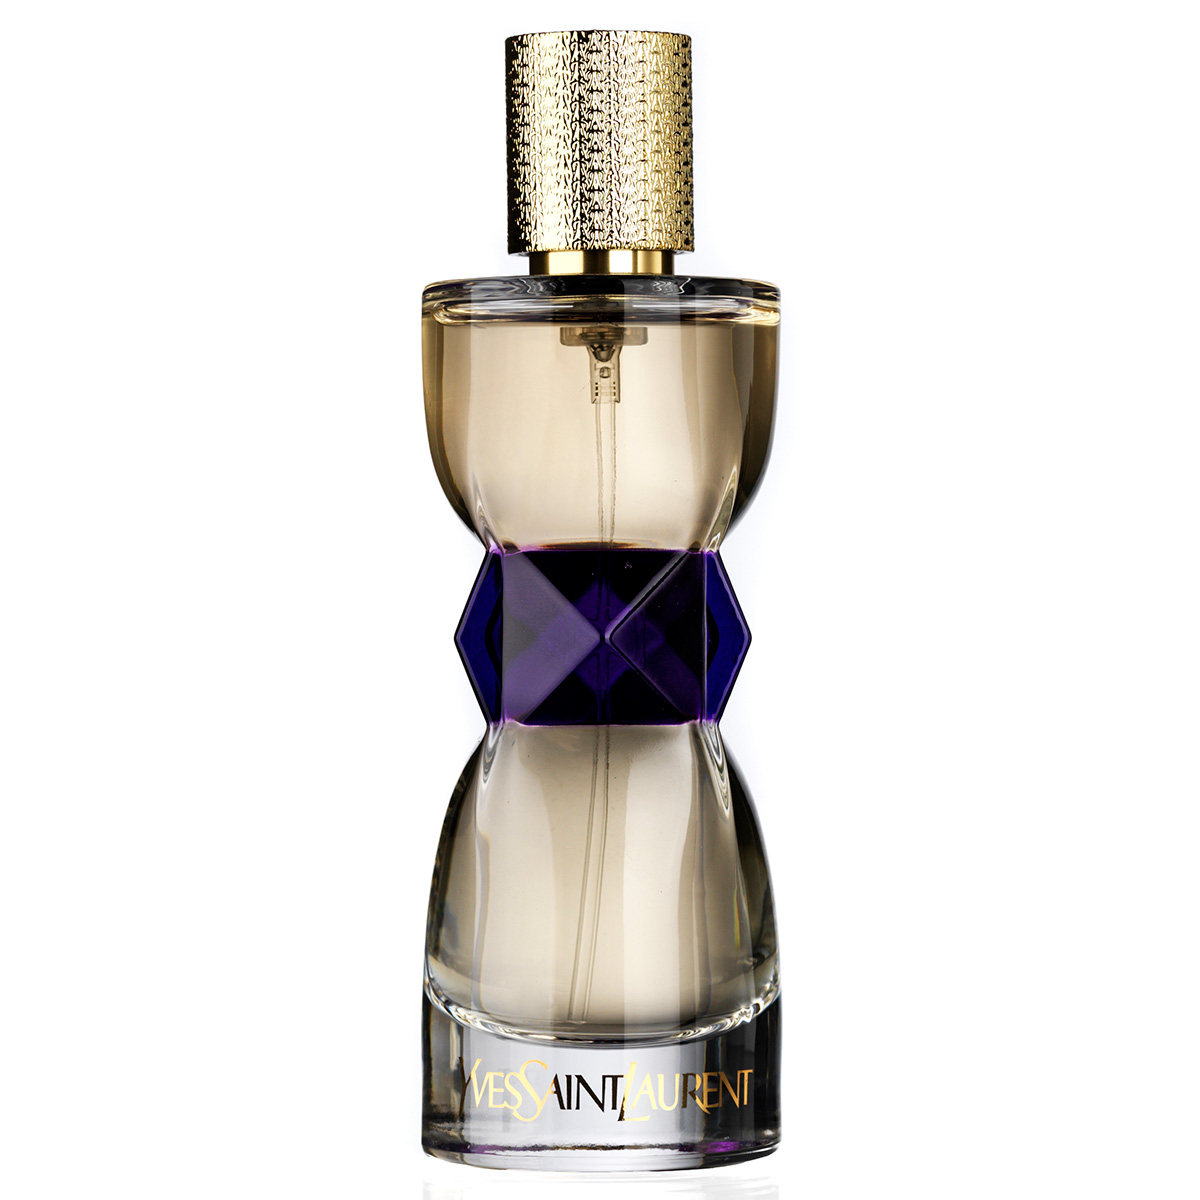 Yves Saint Laurent Manifesto EdP - 50 ml